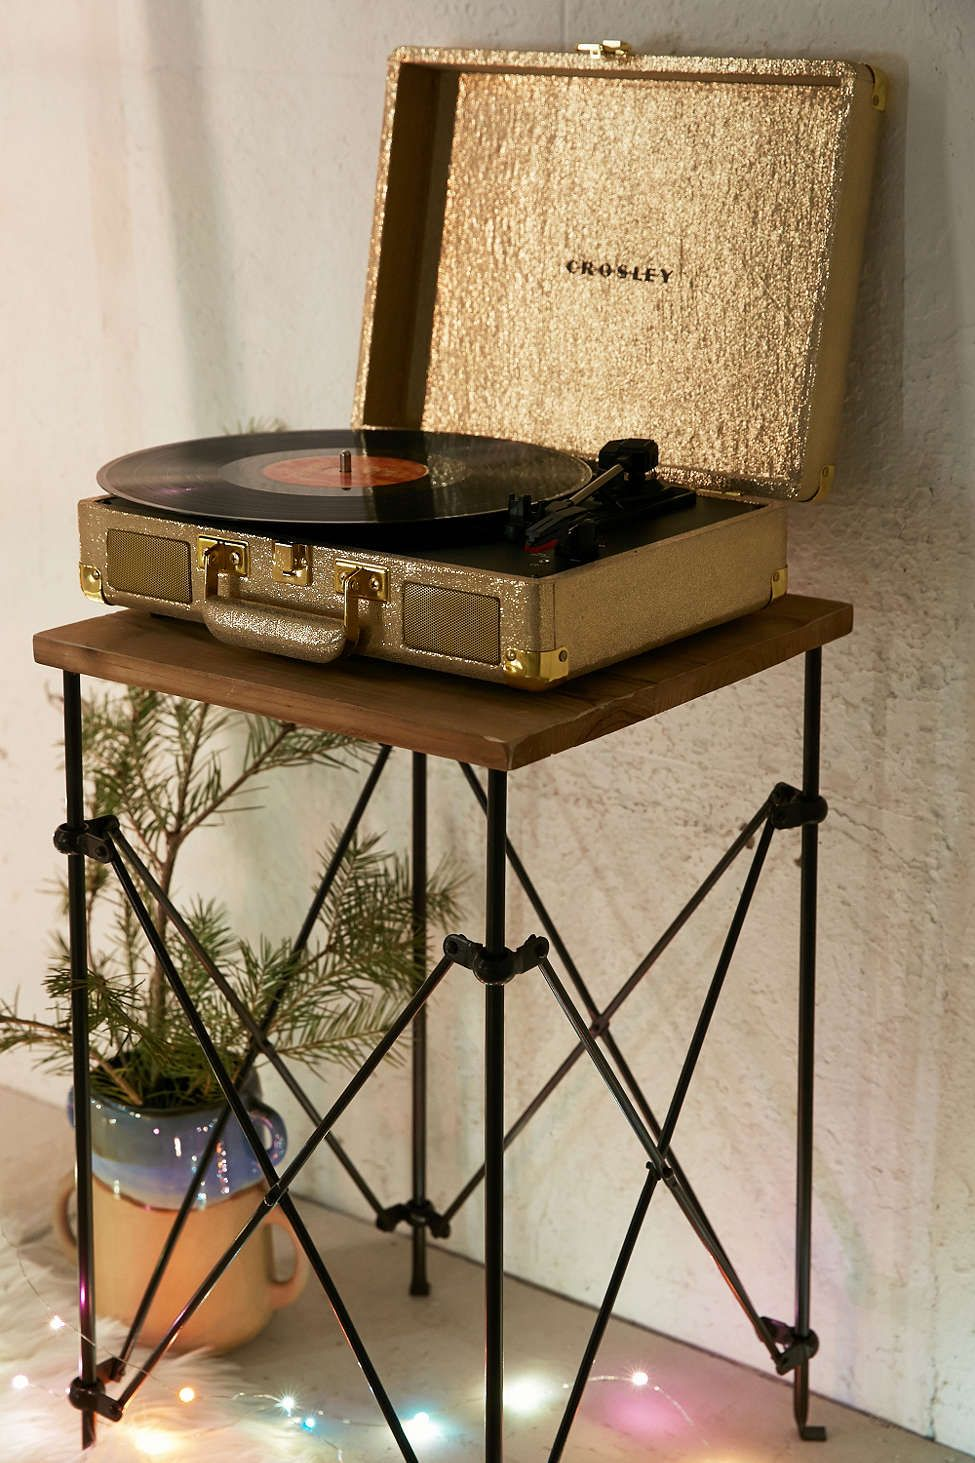 Crosley X Uo Cruiser Briefcase Portable Vinyl Record Player Vinyl Record Player Record Player Record Player Urban Outfitters